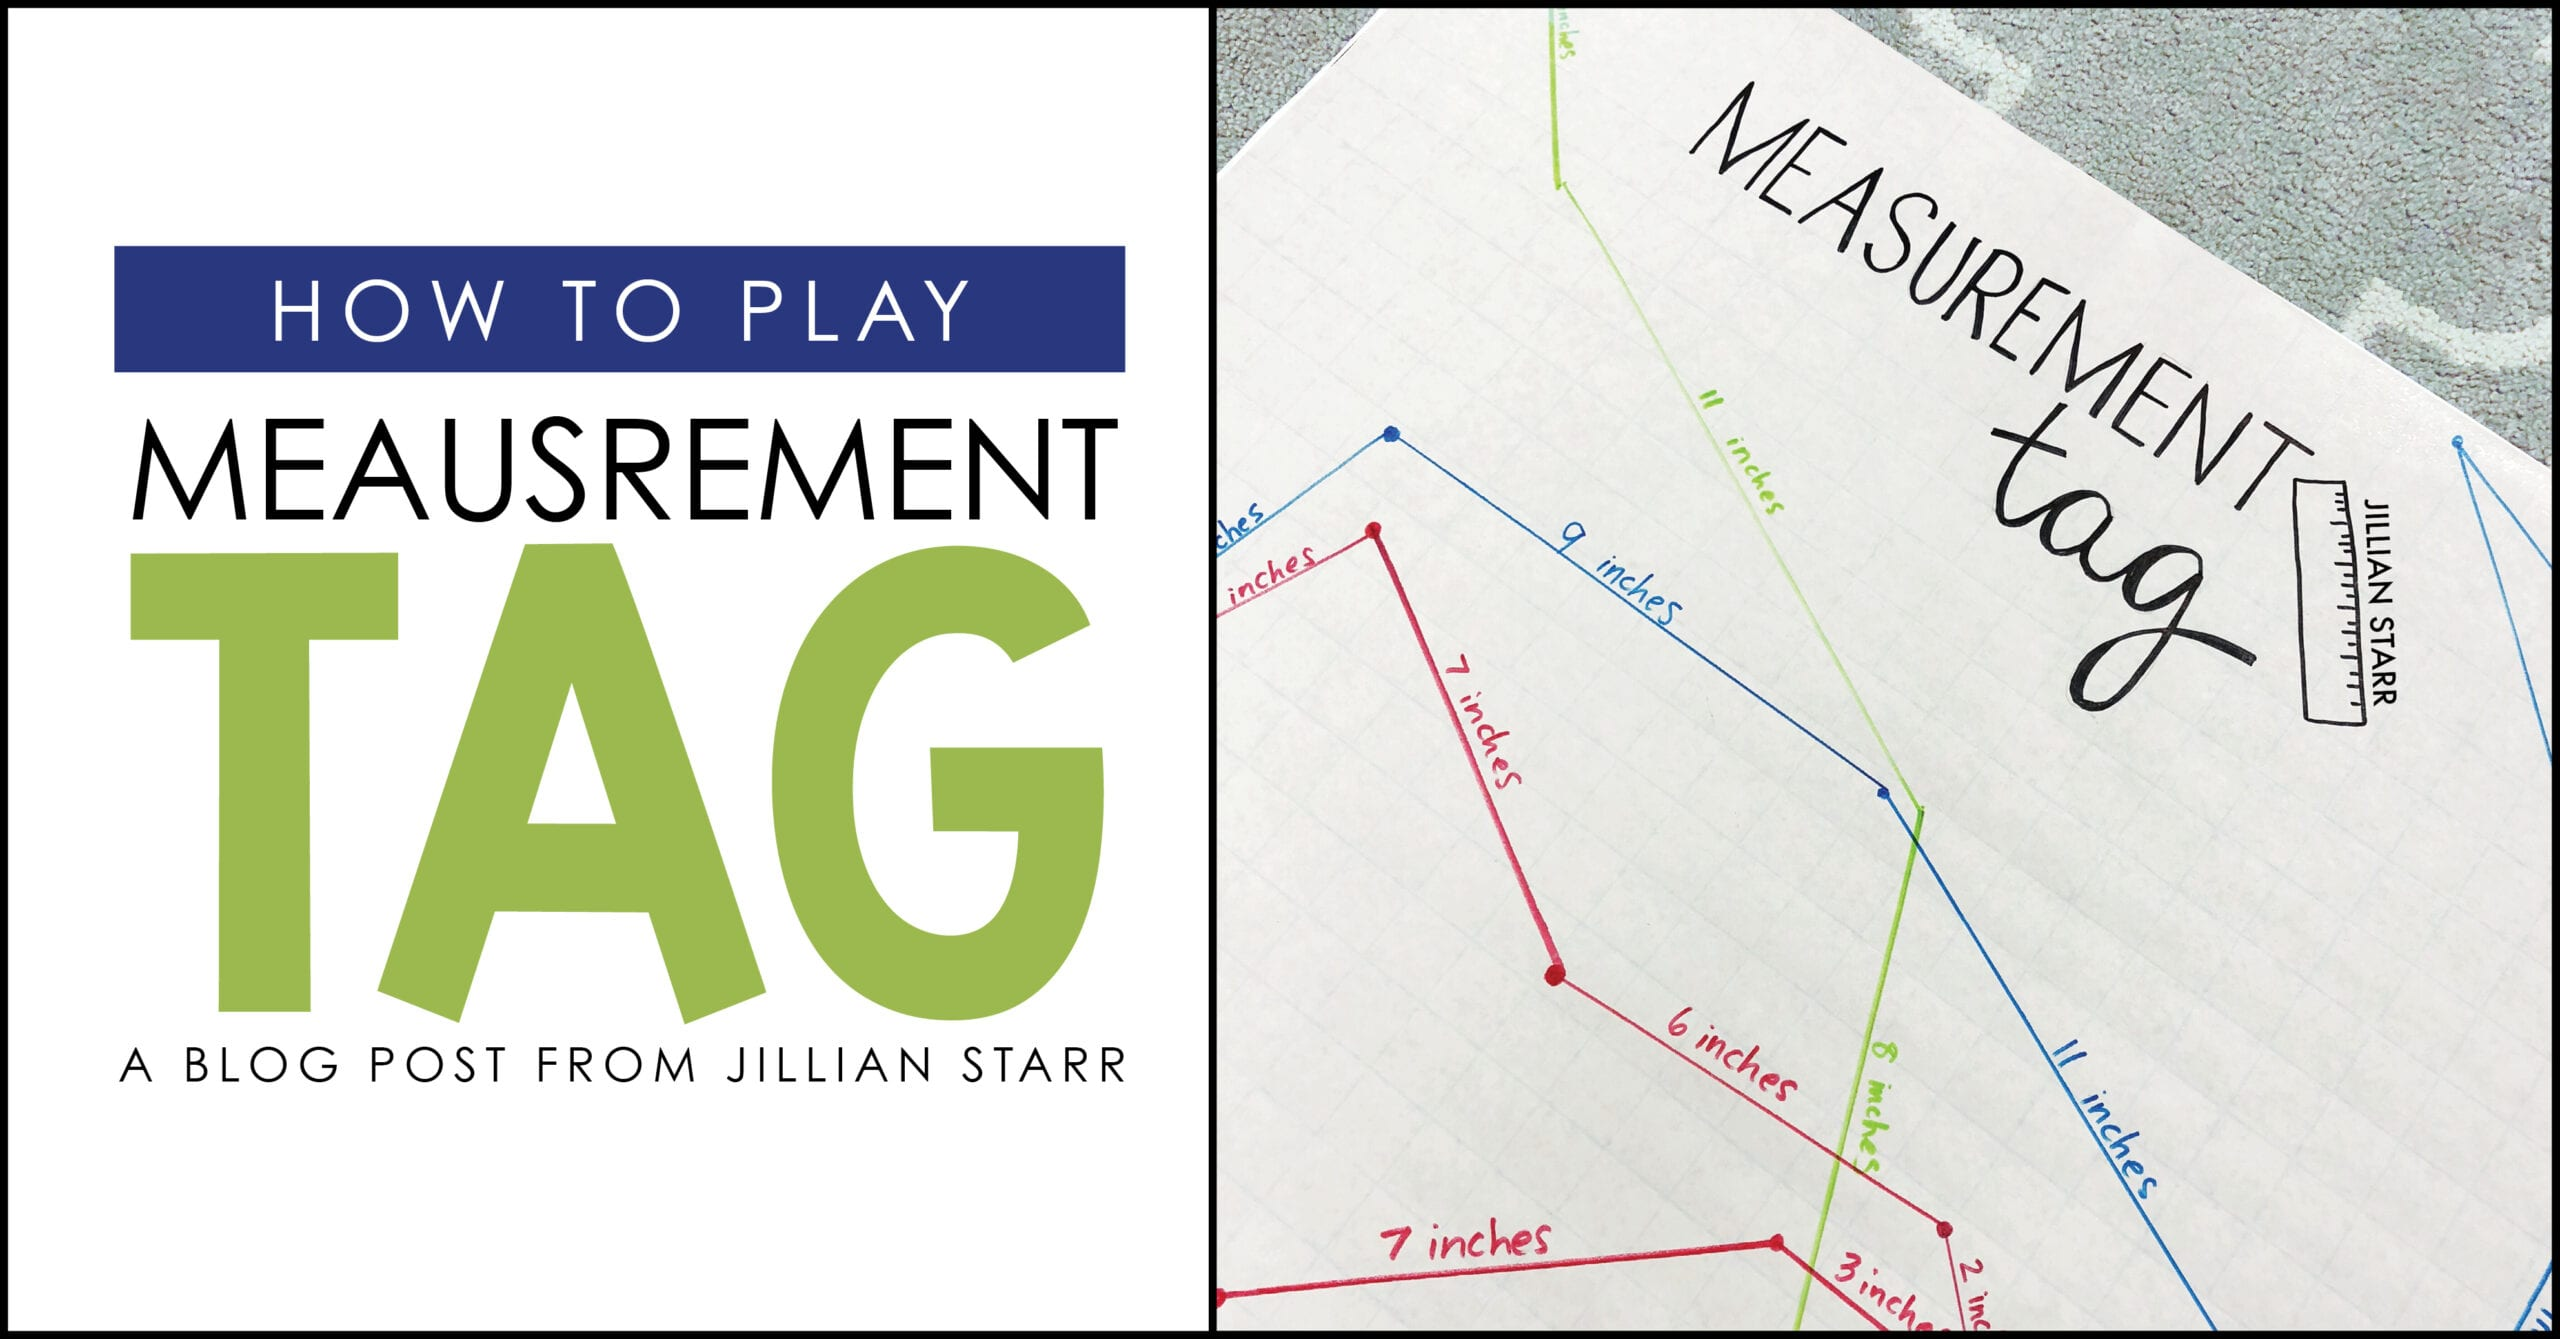 Measurement Tag: A fun game to teach measuring that can be adapted for all students